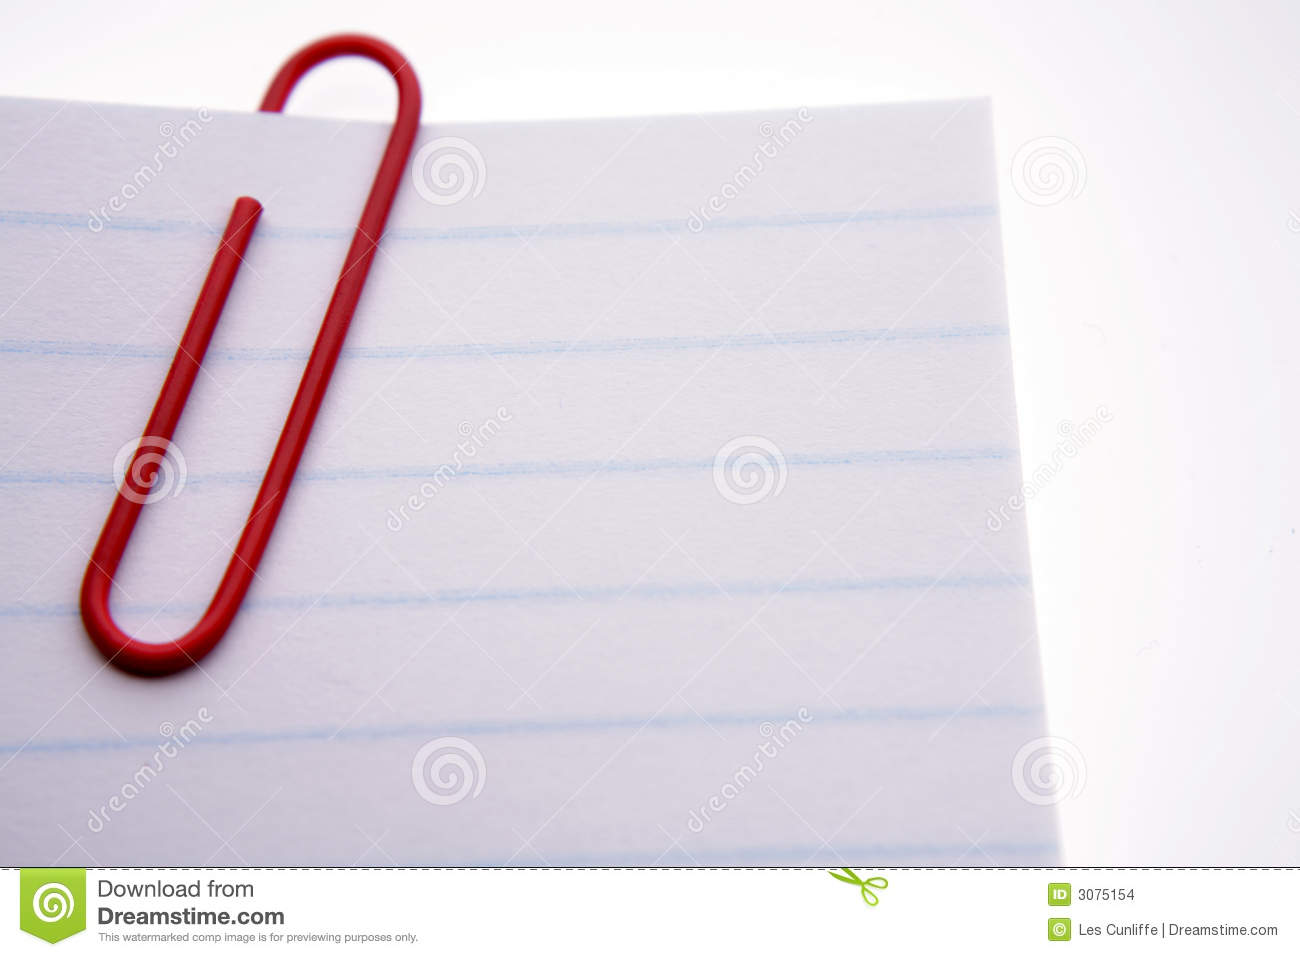 red paper clip on papers stock images